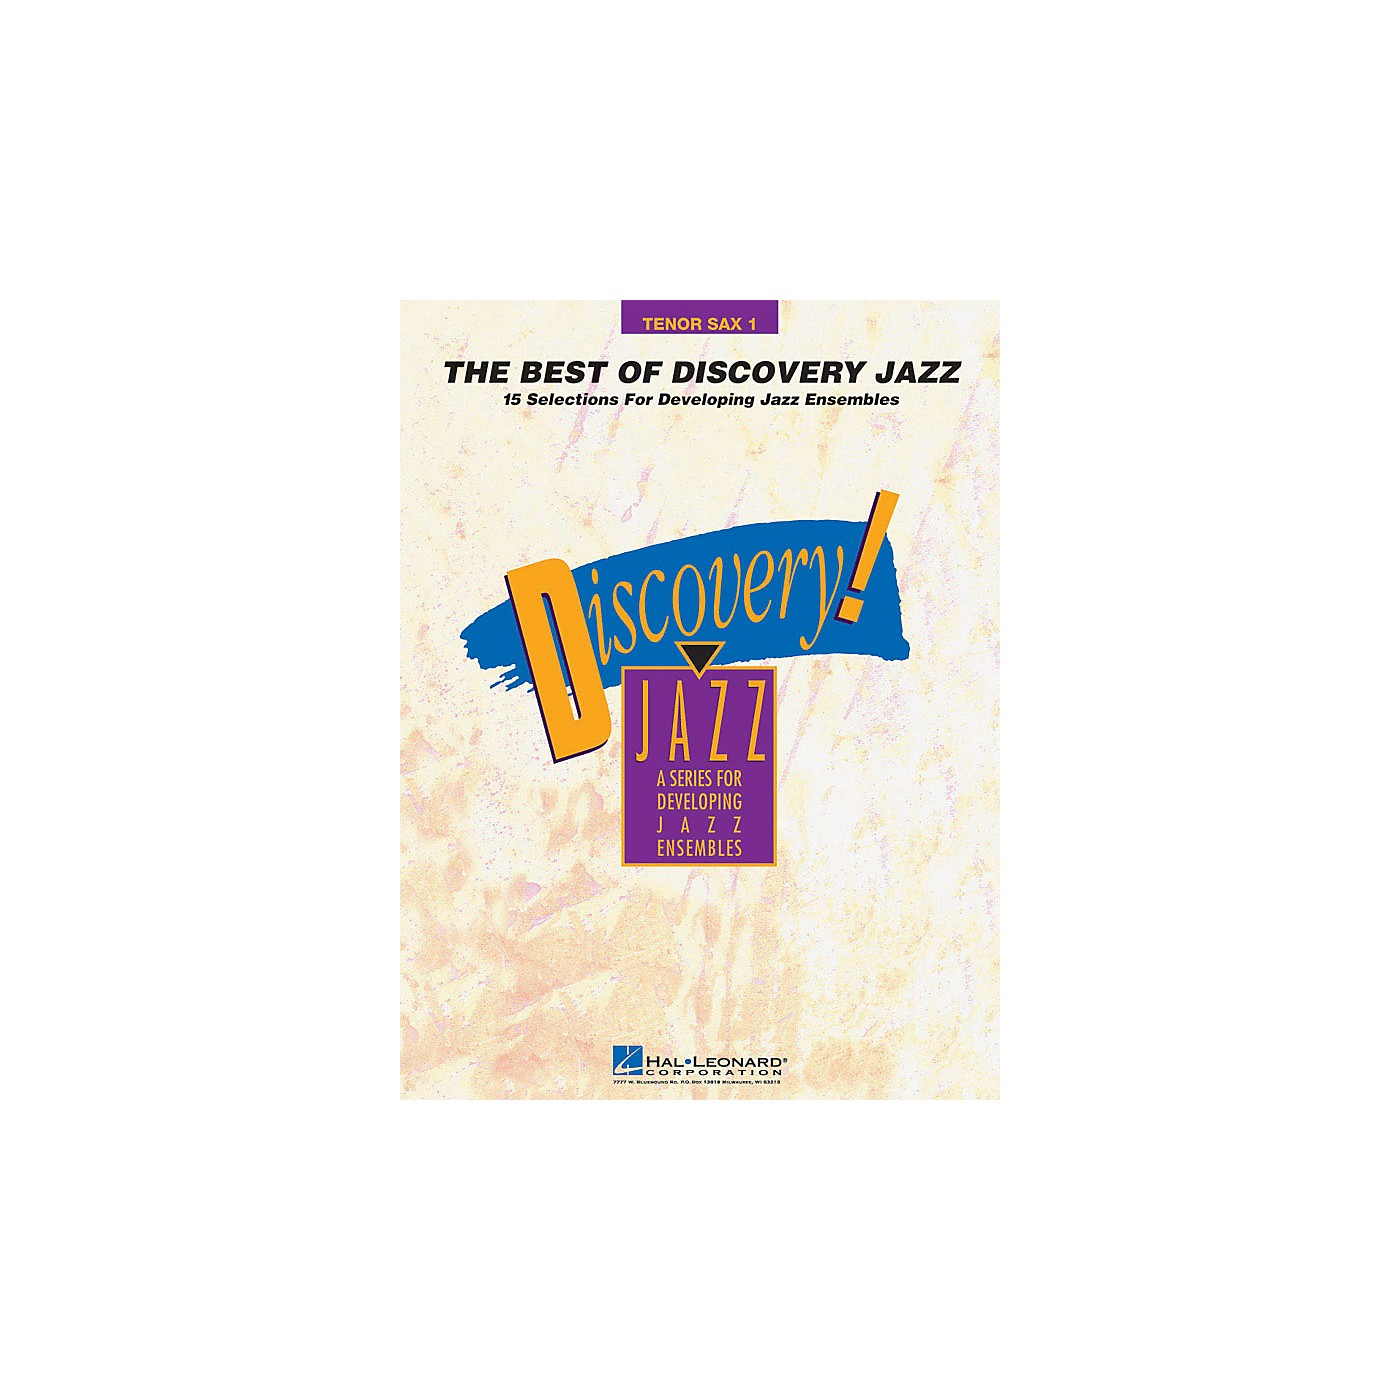 Hal Leonard The Best of Discovery Jazz (Tenor Sax 1) Jazz Band Level 1-2 Composed by Various thumbnail